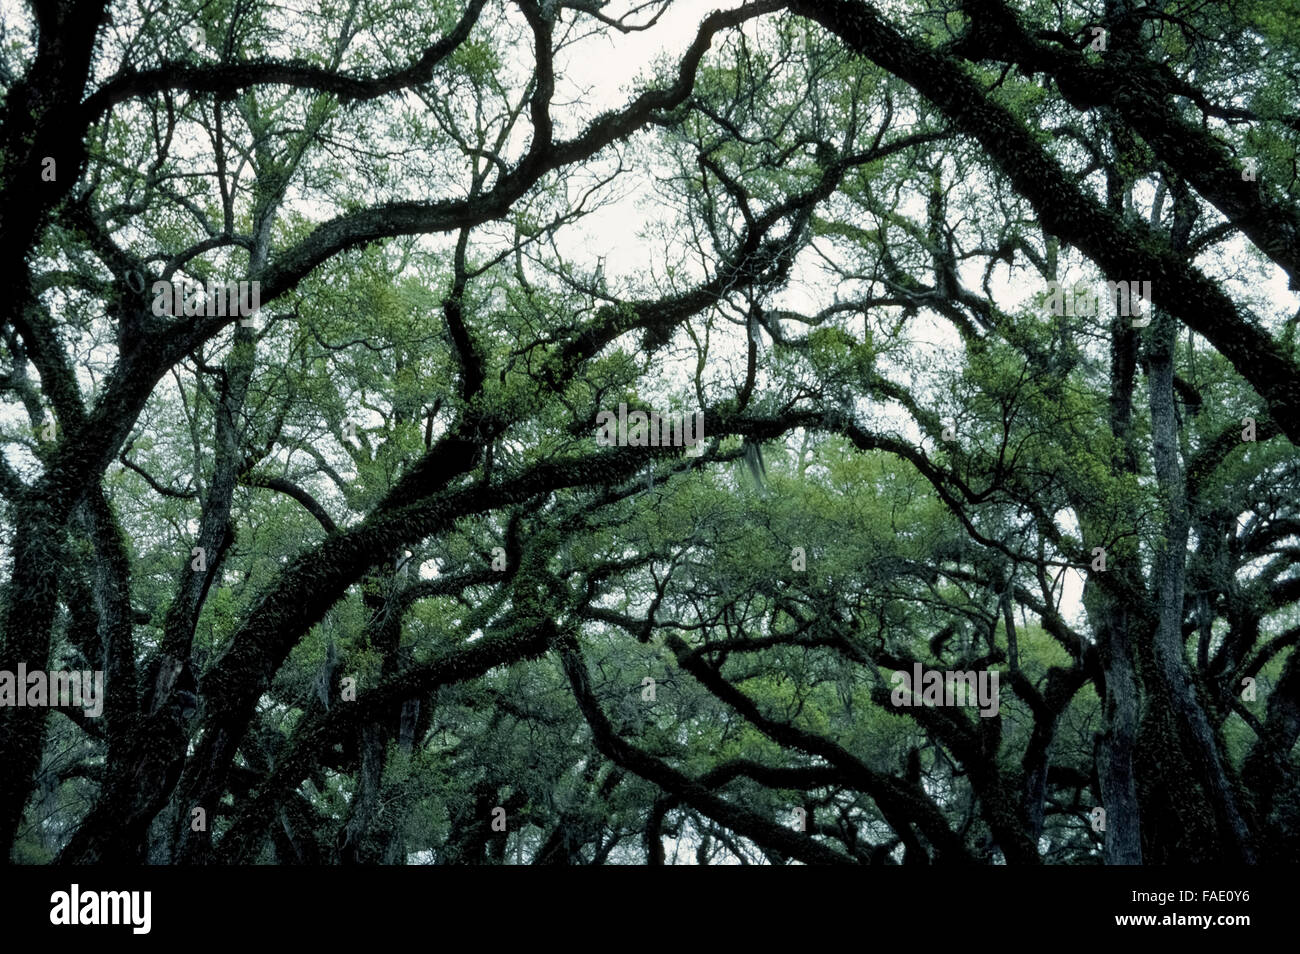 The twisted silhouettes of limbs and branches of moss-covered live oak trees in Louisiana evoke an eerie scene in - Stock Image